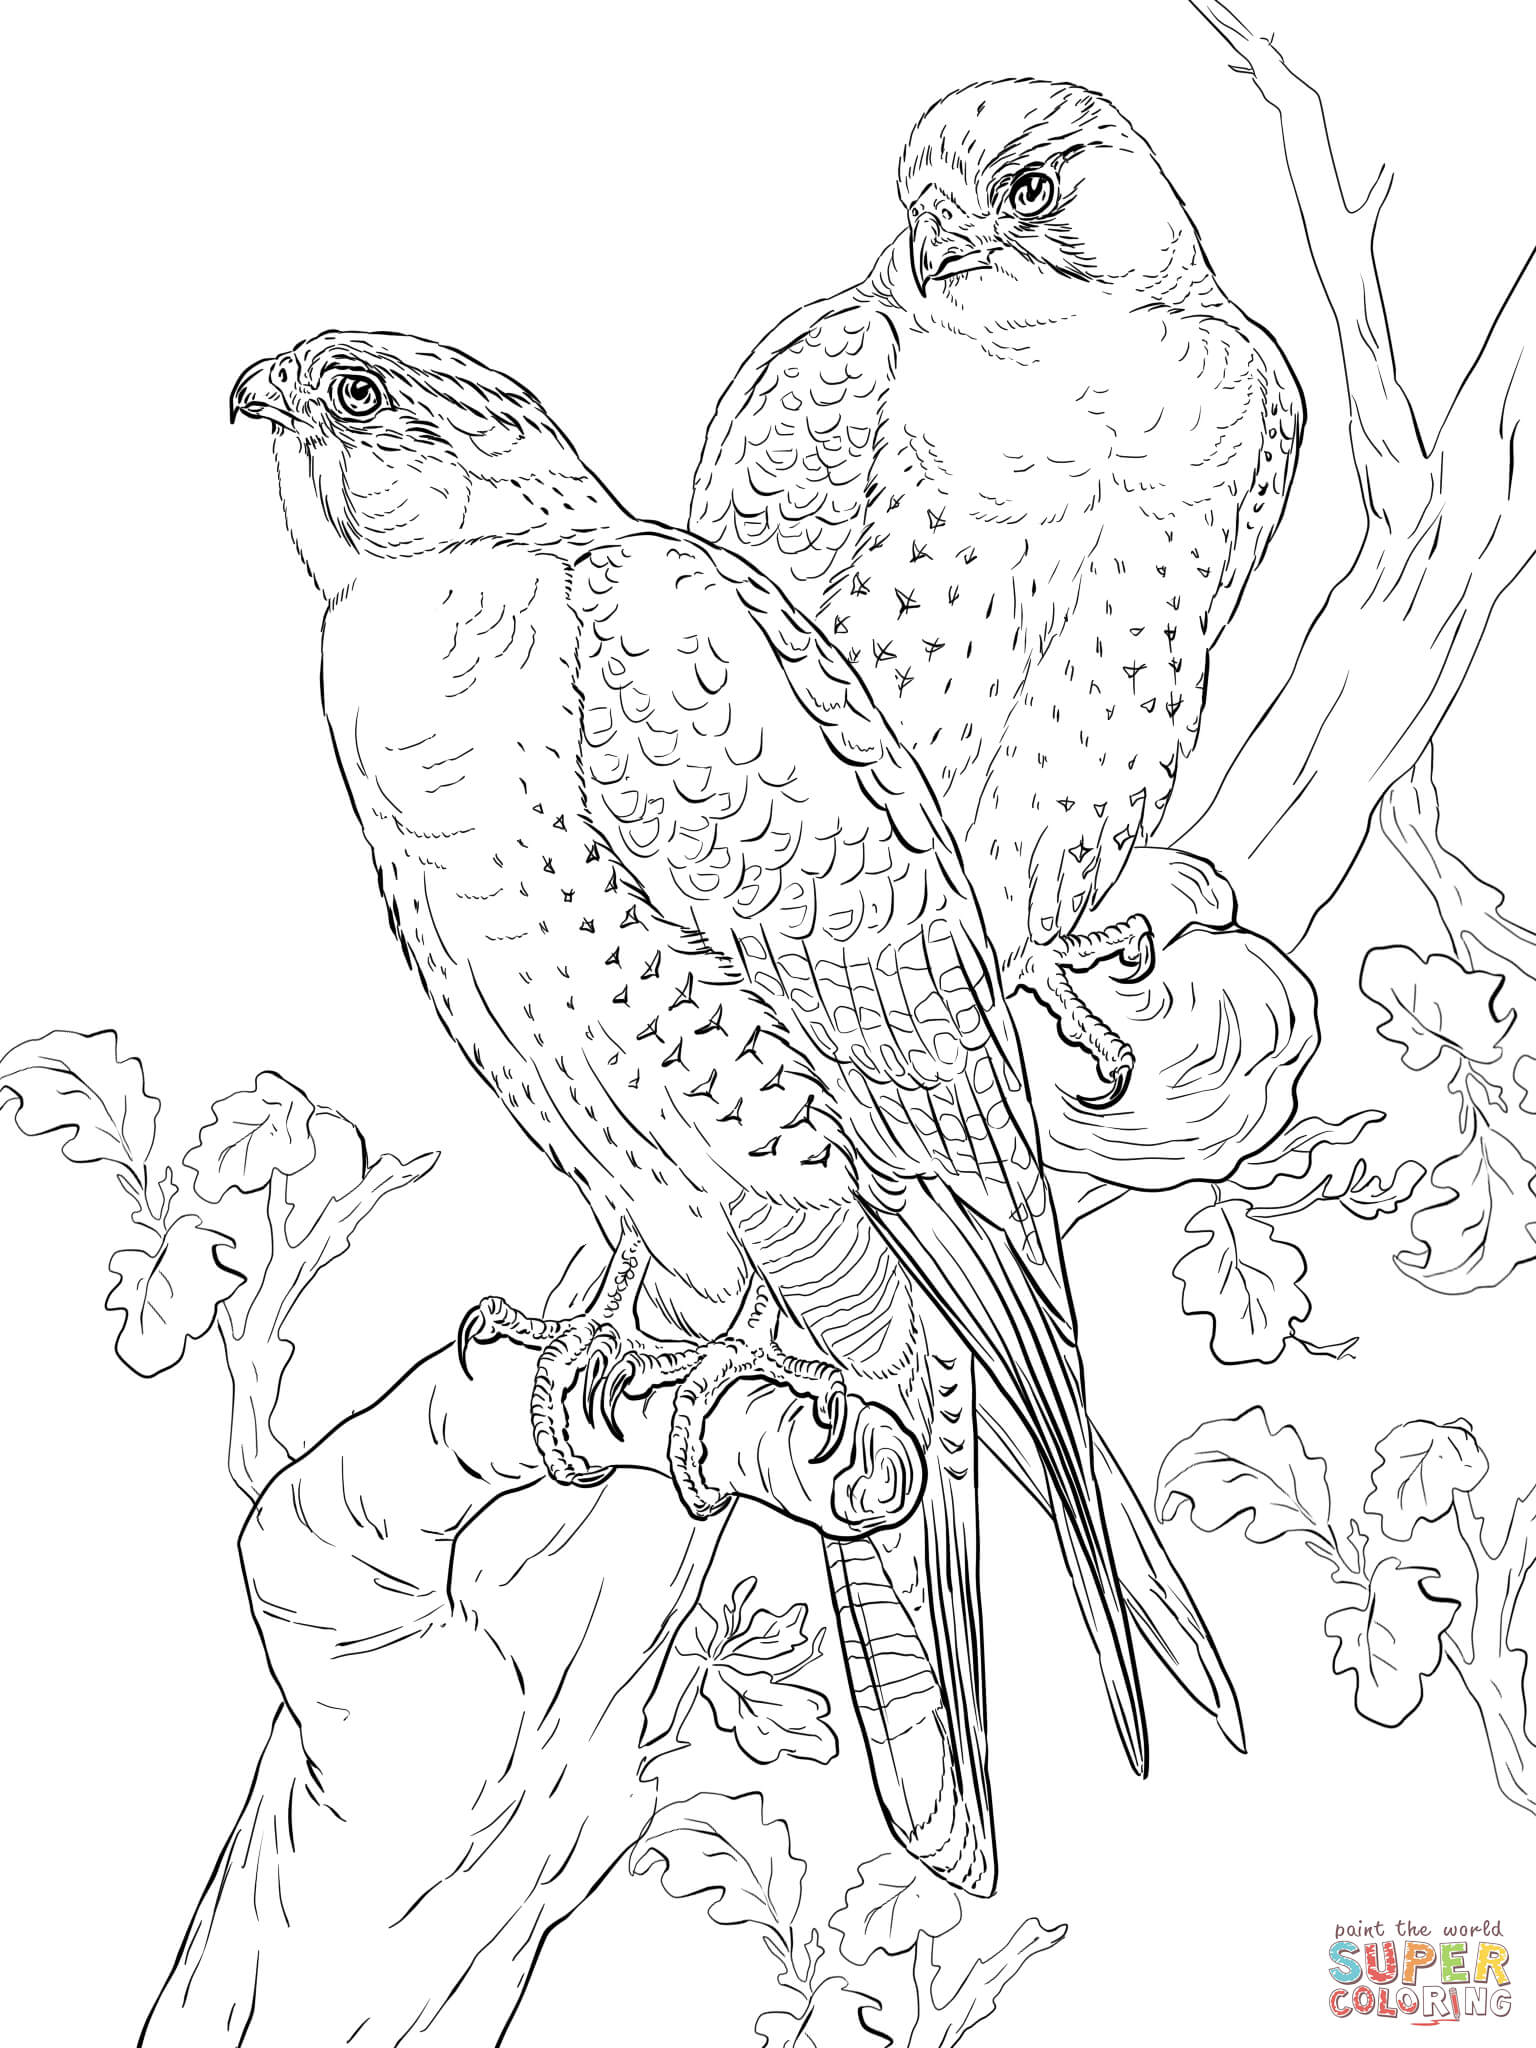 Falcon coloring pages to download